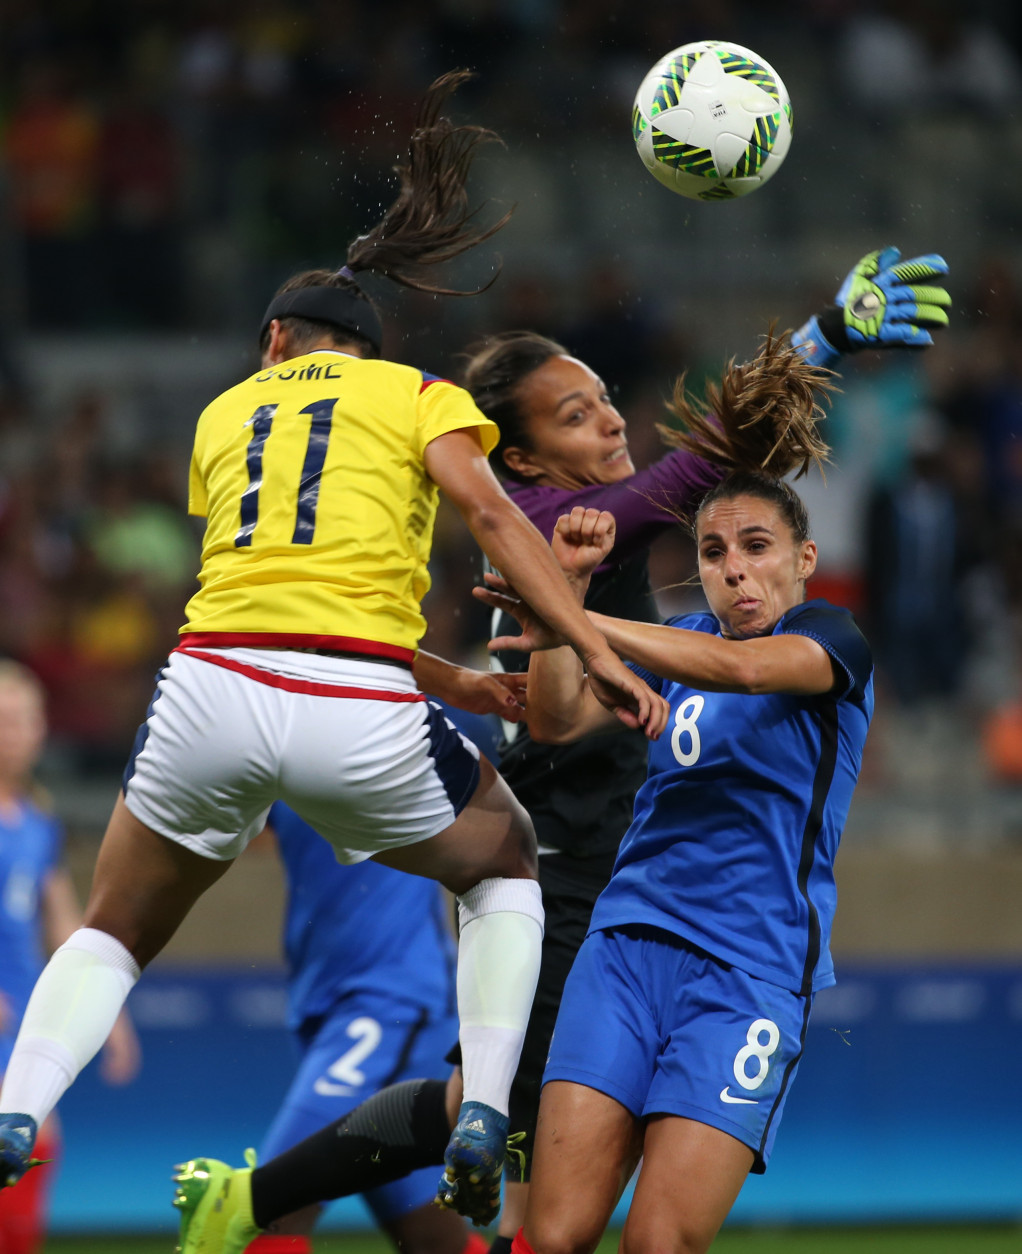 Colombia's Catalina Usme, left, France goalkeeper Sarah Bouhaddi, center, and France's Jessica Houara fight for the ball during the Women's Olympic Football Tournament at the Mineirao stadium in Belo Horizonte, Brazil, Wednesday, Aug. 3, 2016. (AP Photo/Eugenio Savio)